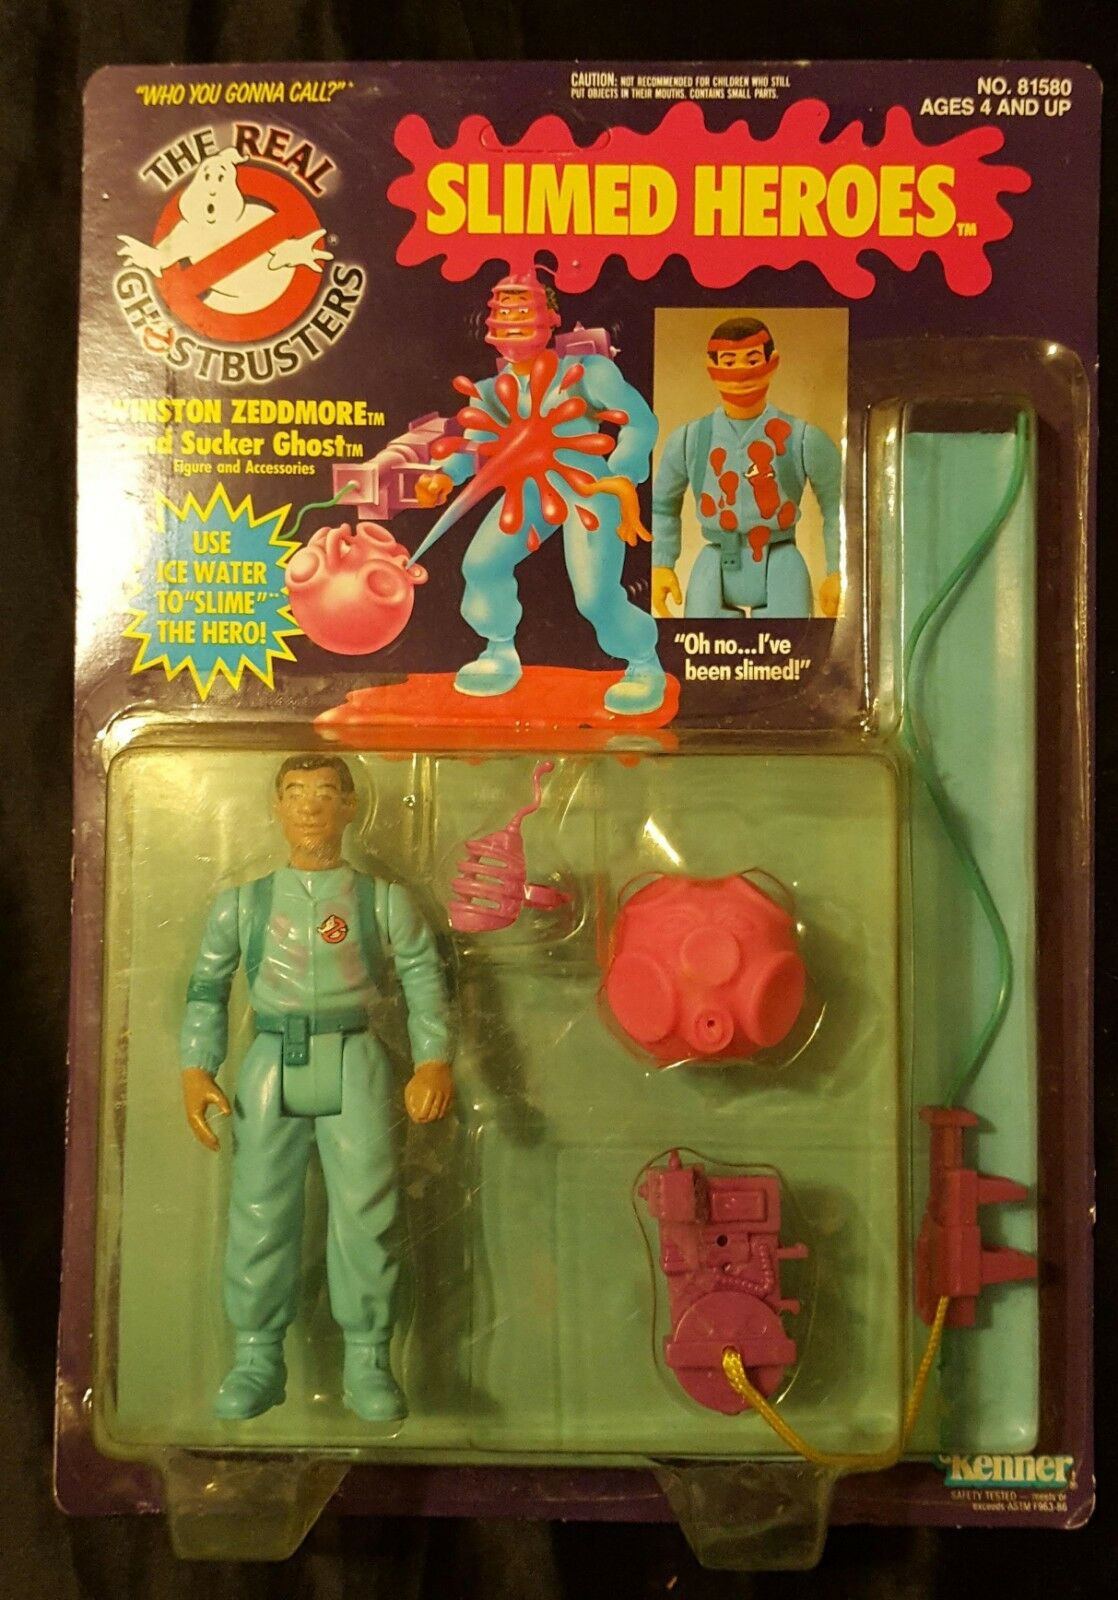 The Real Ghostbusters, Slimed Heroes   Winston Zeddmore  Figure (Kenner, 1984)